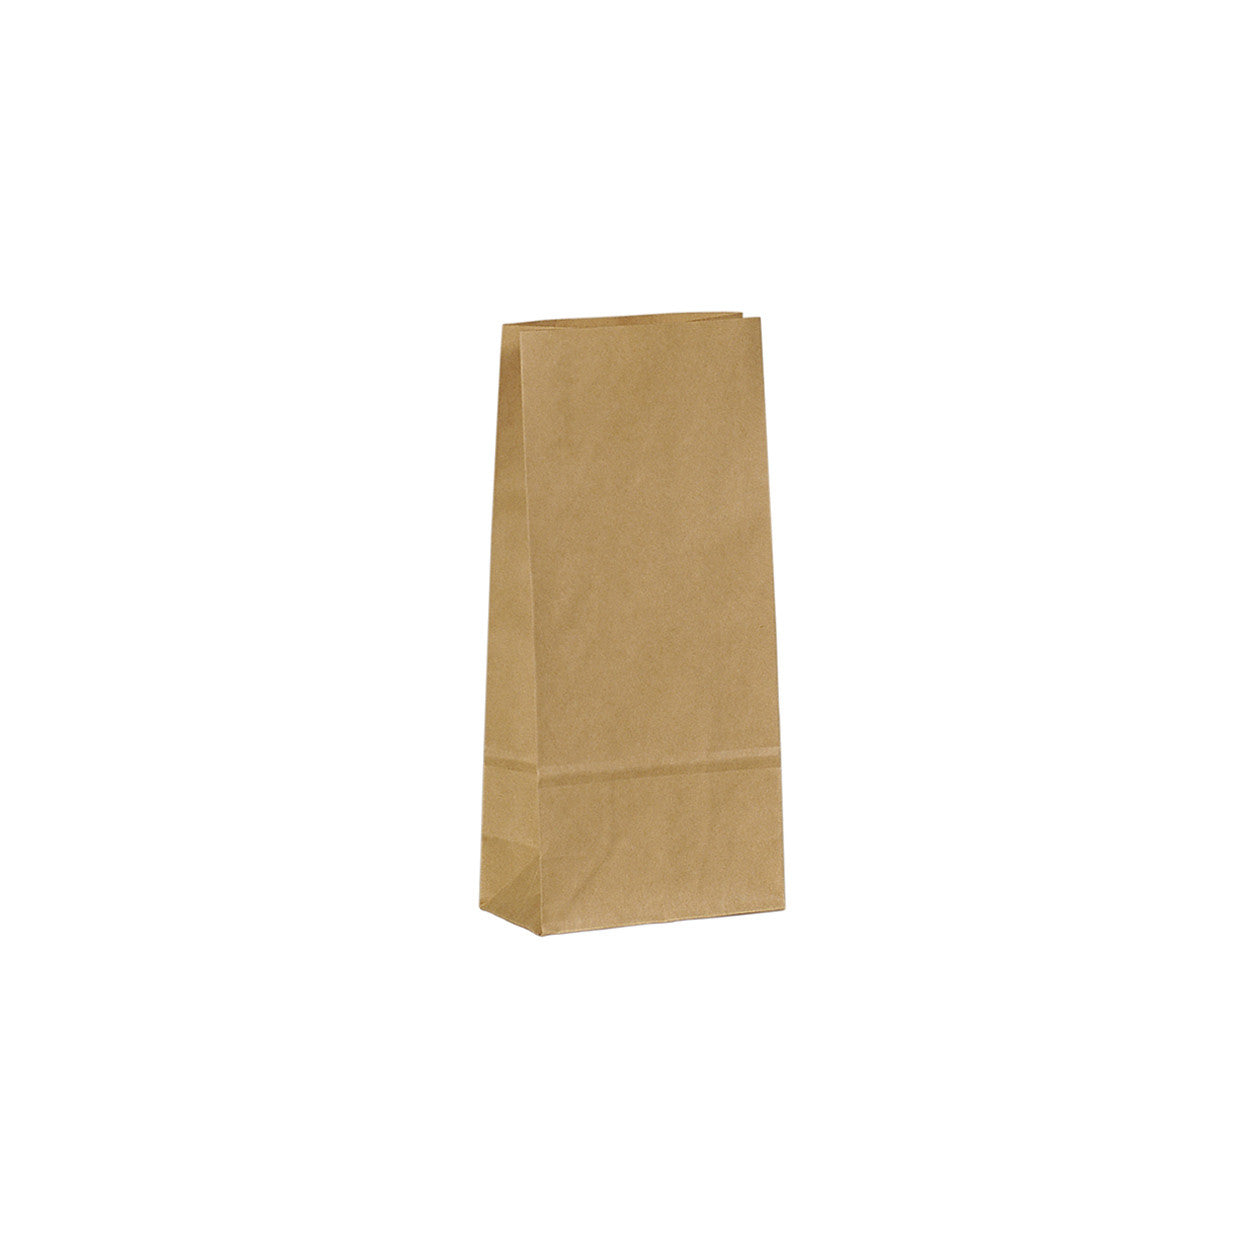 Paper Gift Bag Medium 270 X 145 X 95 (Pack Of 100) AR8001BN